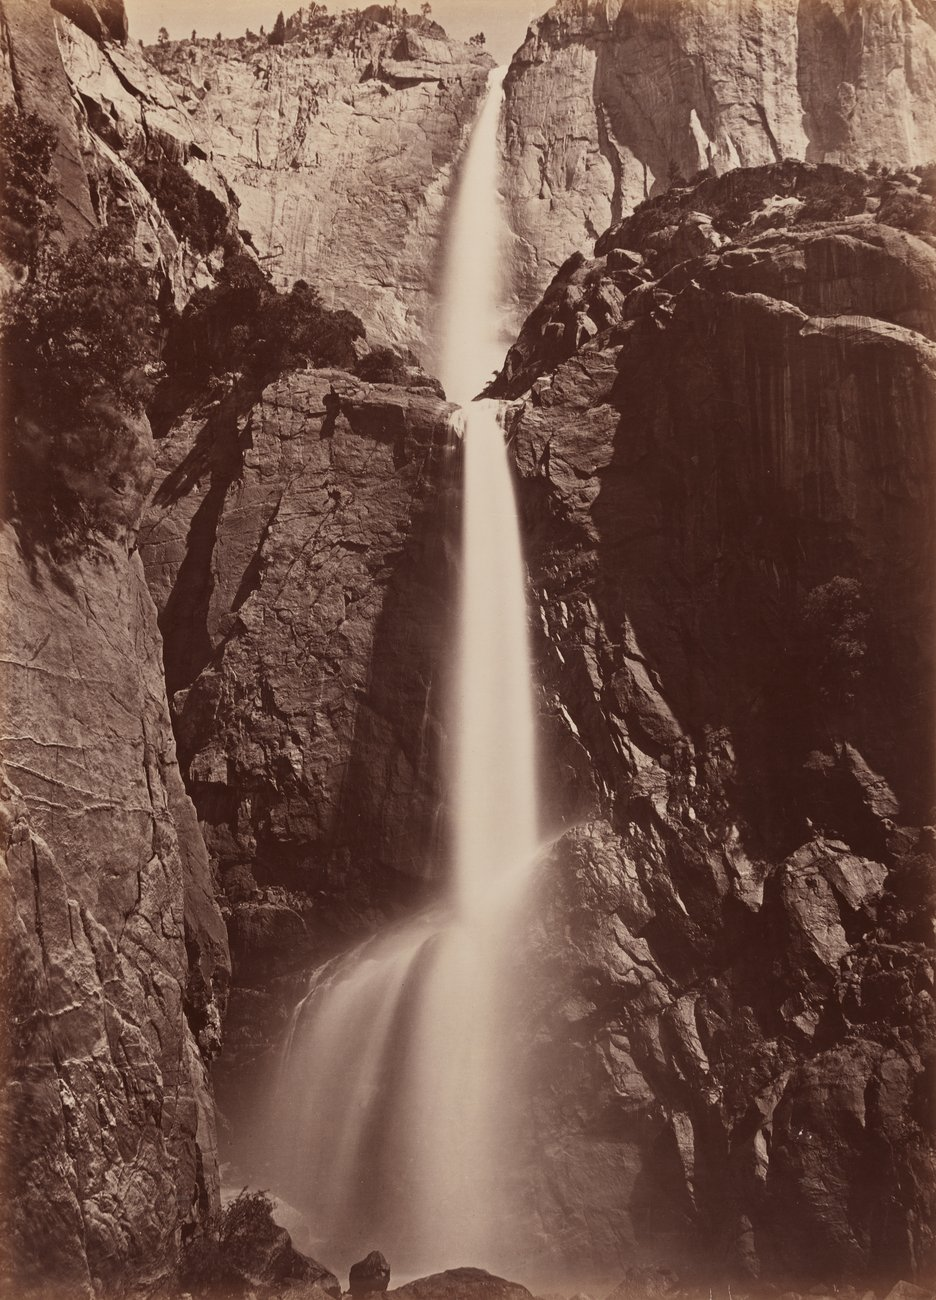 Sepia-toned black and white photograph of a tall cascading waterfall seen from below